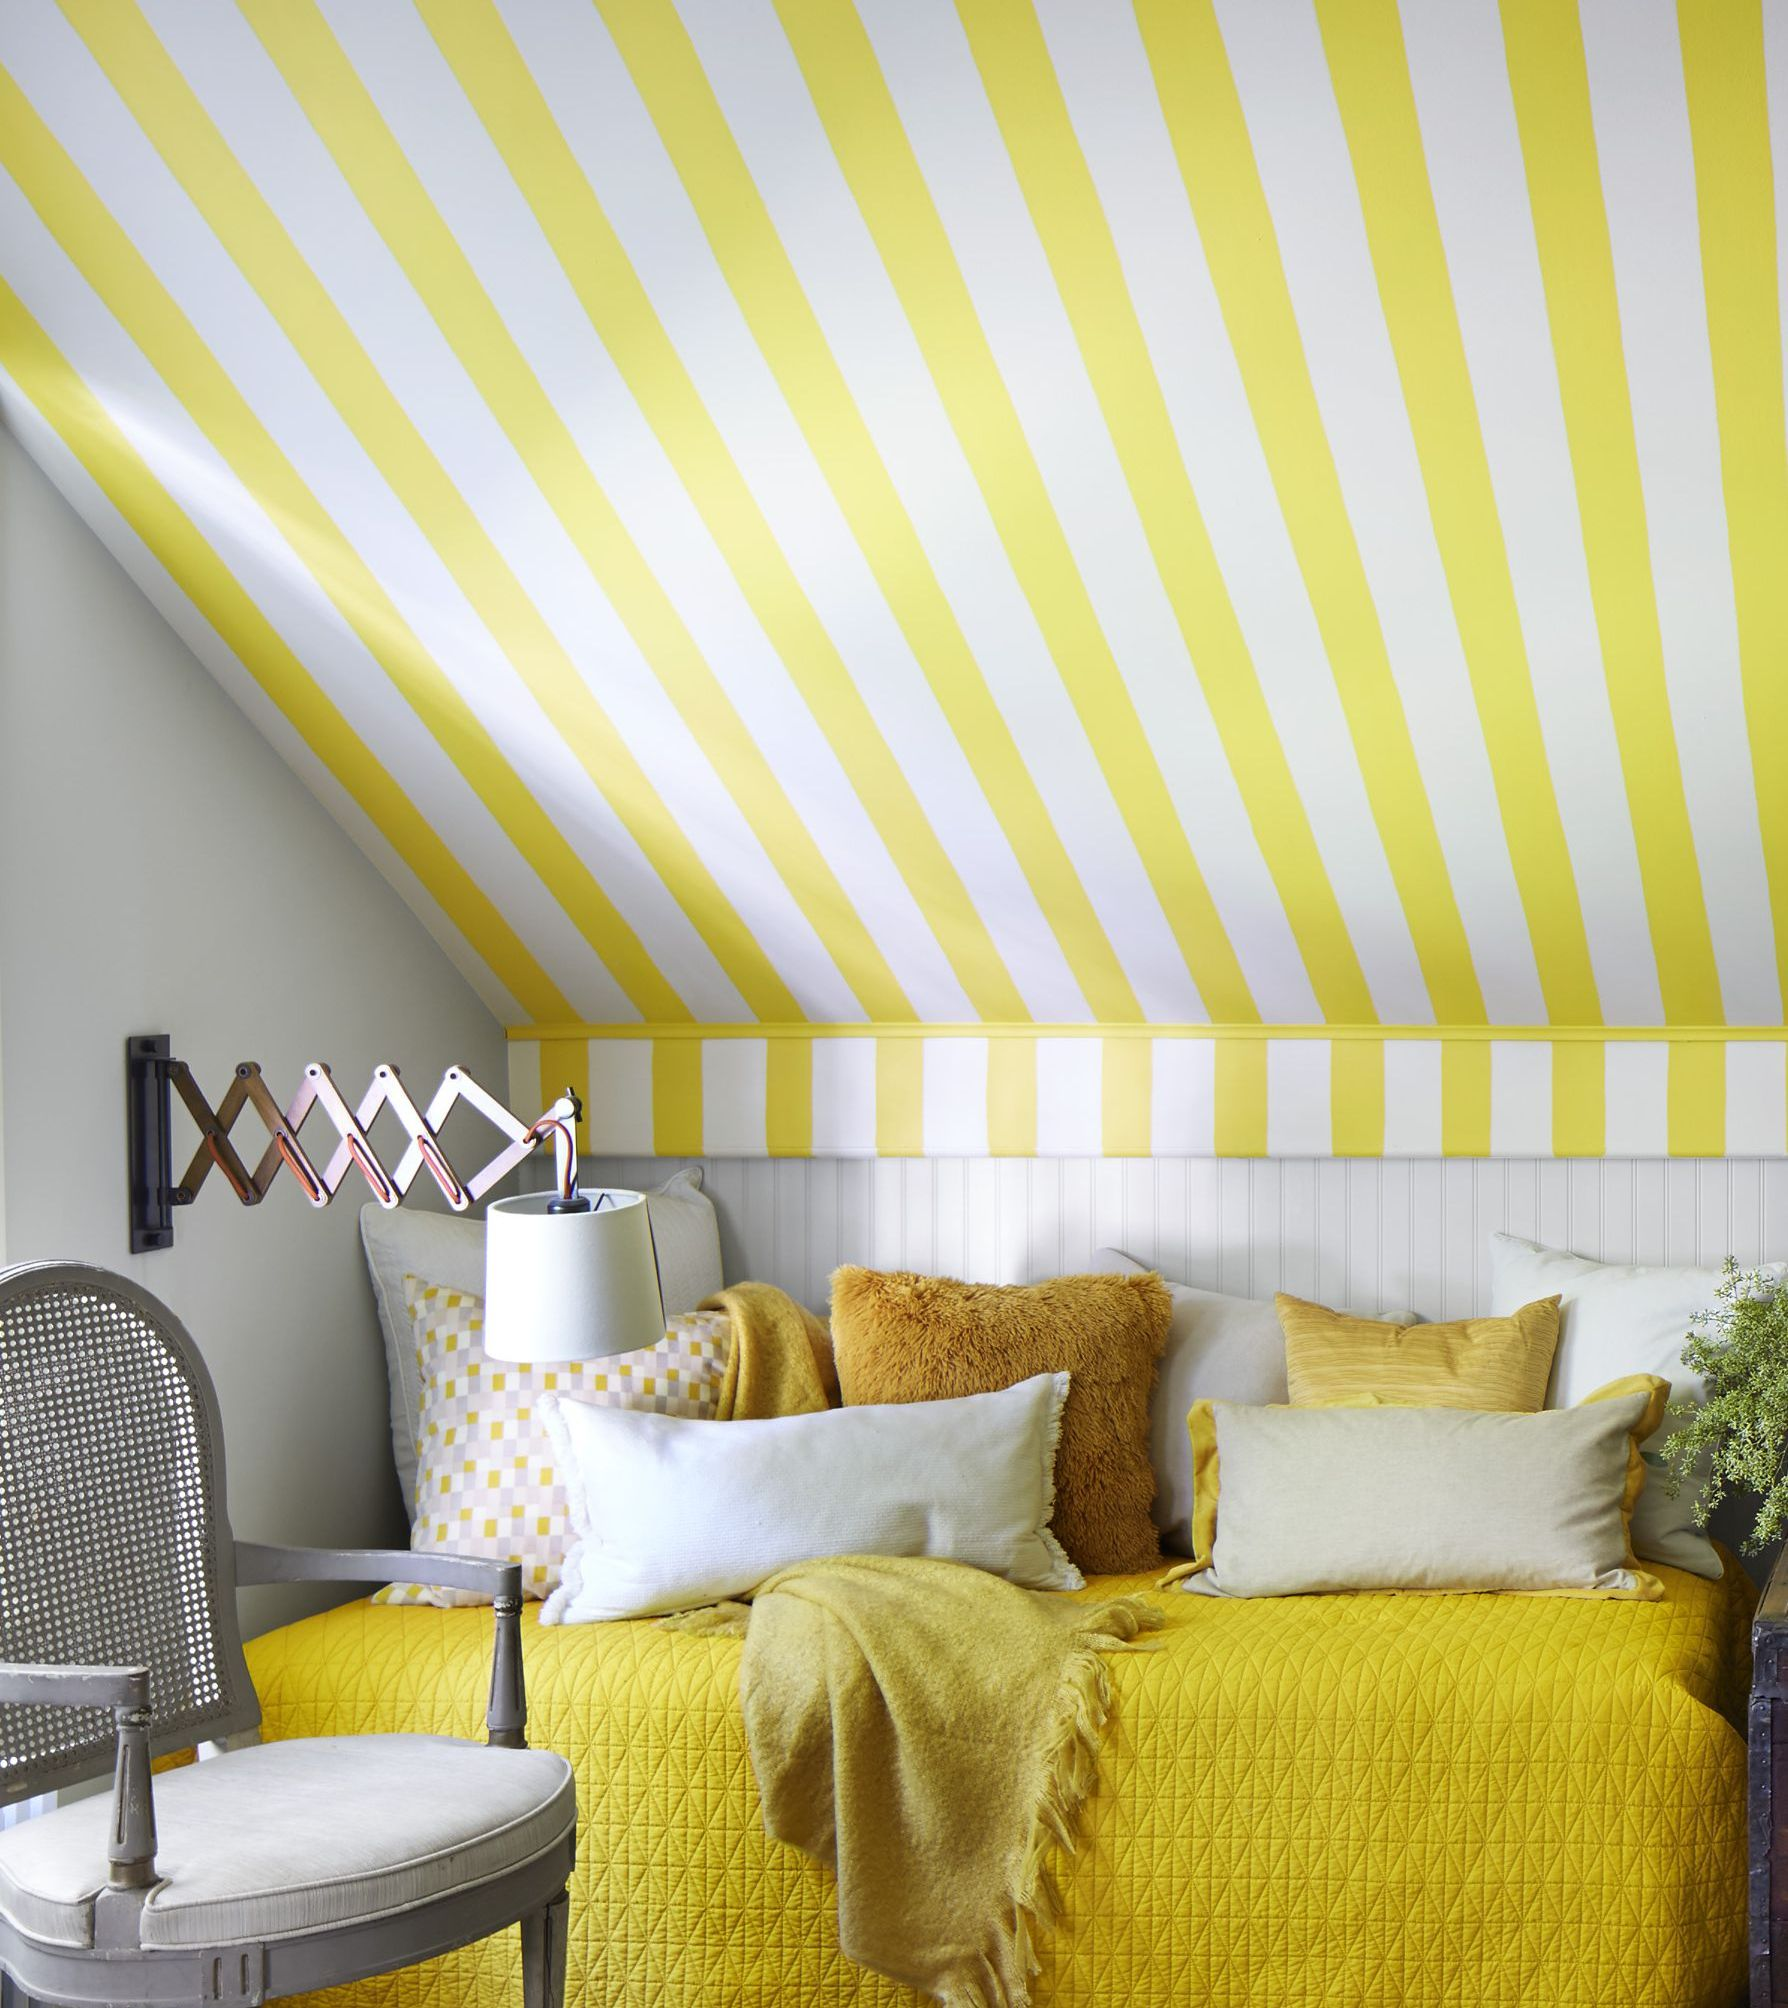 All The Different Bedroom Ceiling Styles You Need To Consider